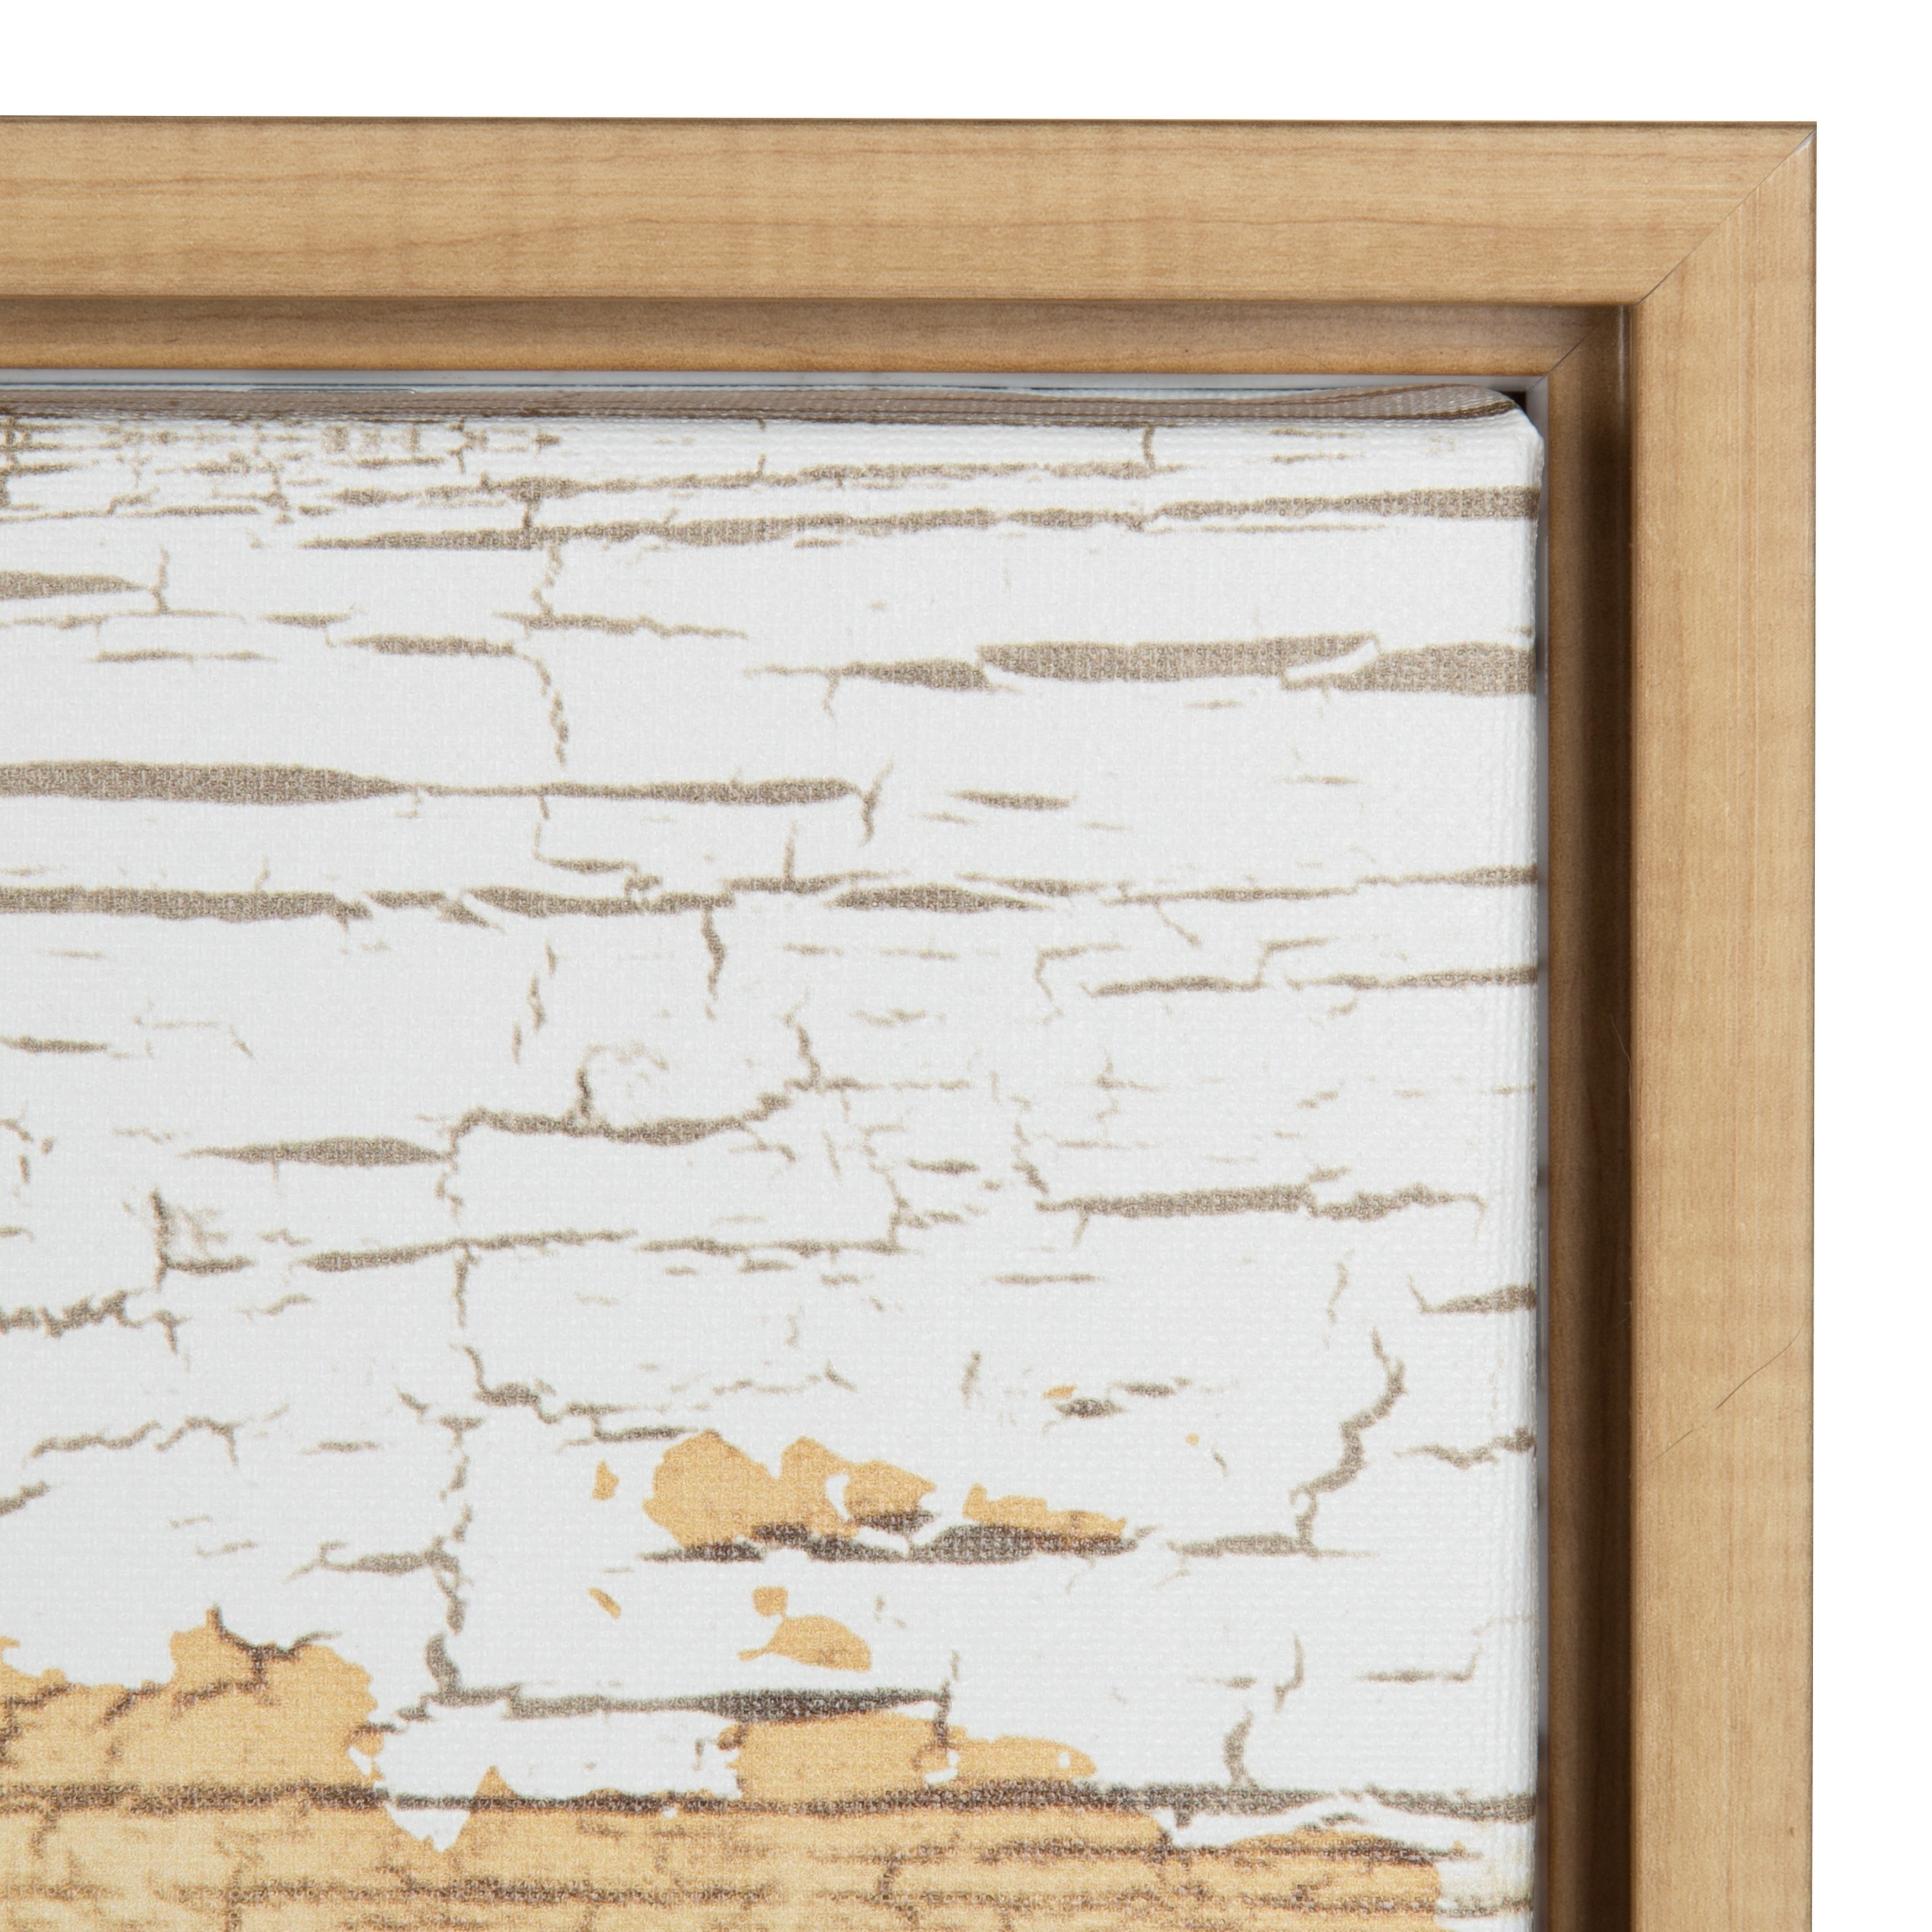 Sylvie rustic world map 23x33 natural framed canvas wall art free sylvie rustic world map 23x33 natural framed canvas wall art free shipping today overstock 24042587 gumiabroncs Gallery